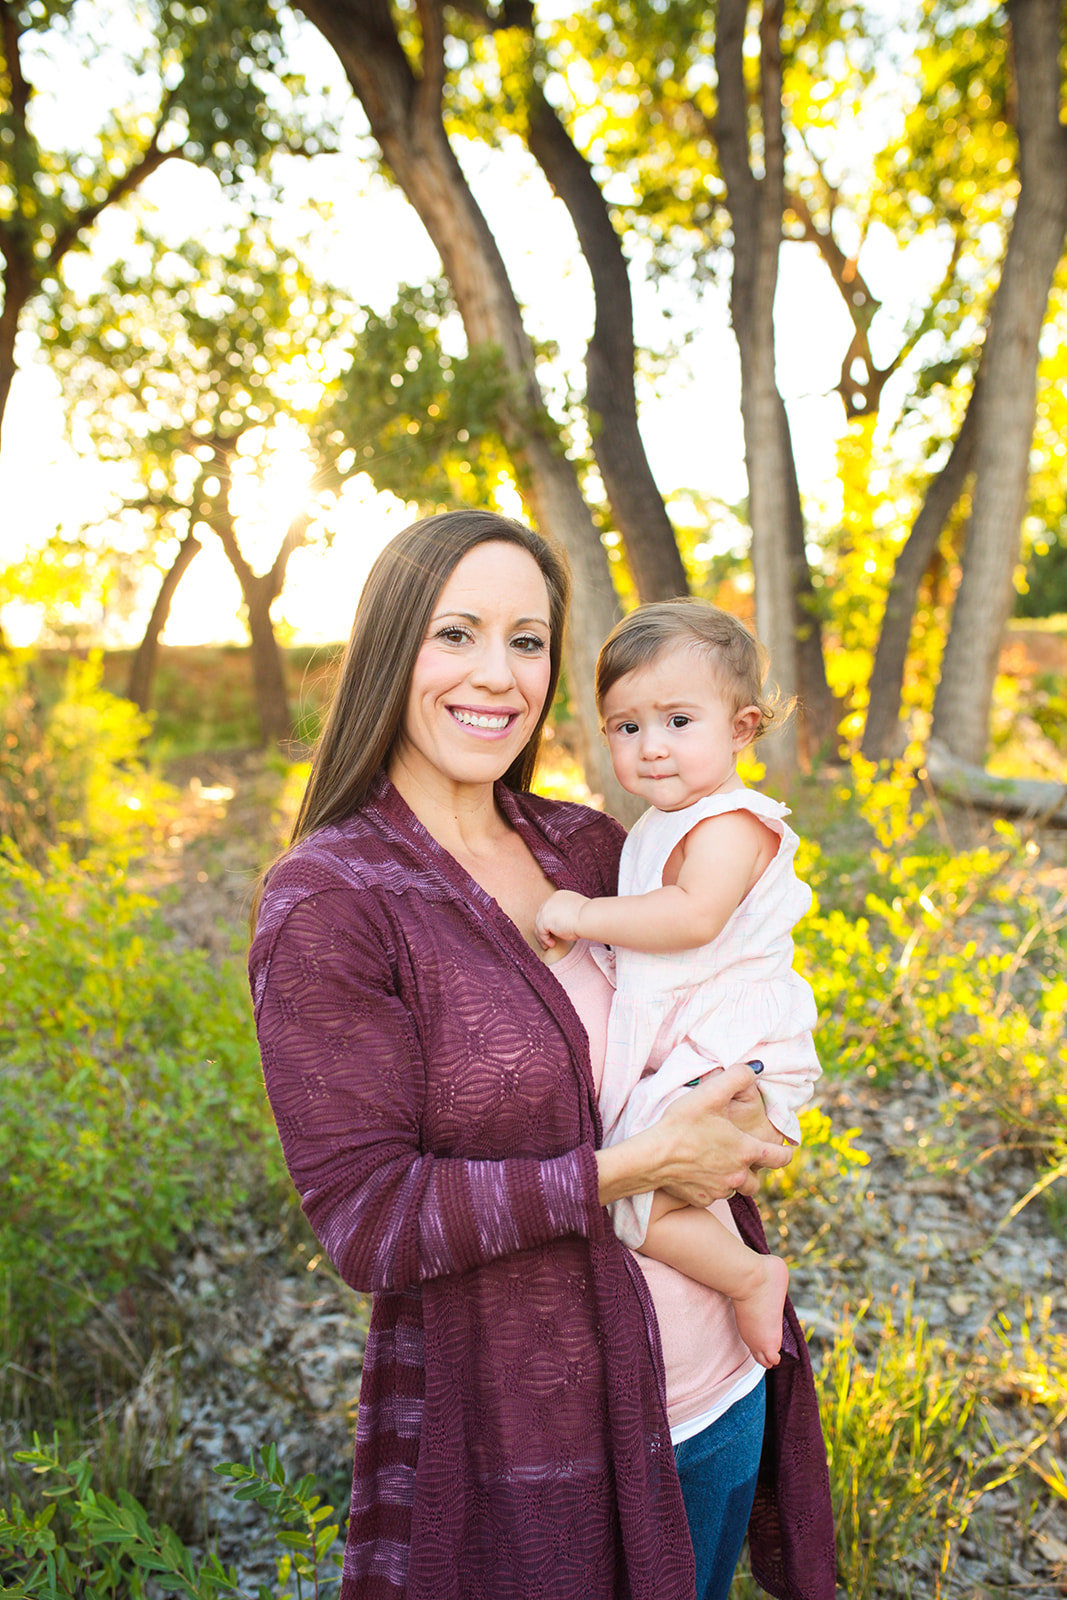 Albuquerque Family Photographer_Bosque_www.tylerbrooke.com_Kate Kauffman_006